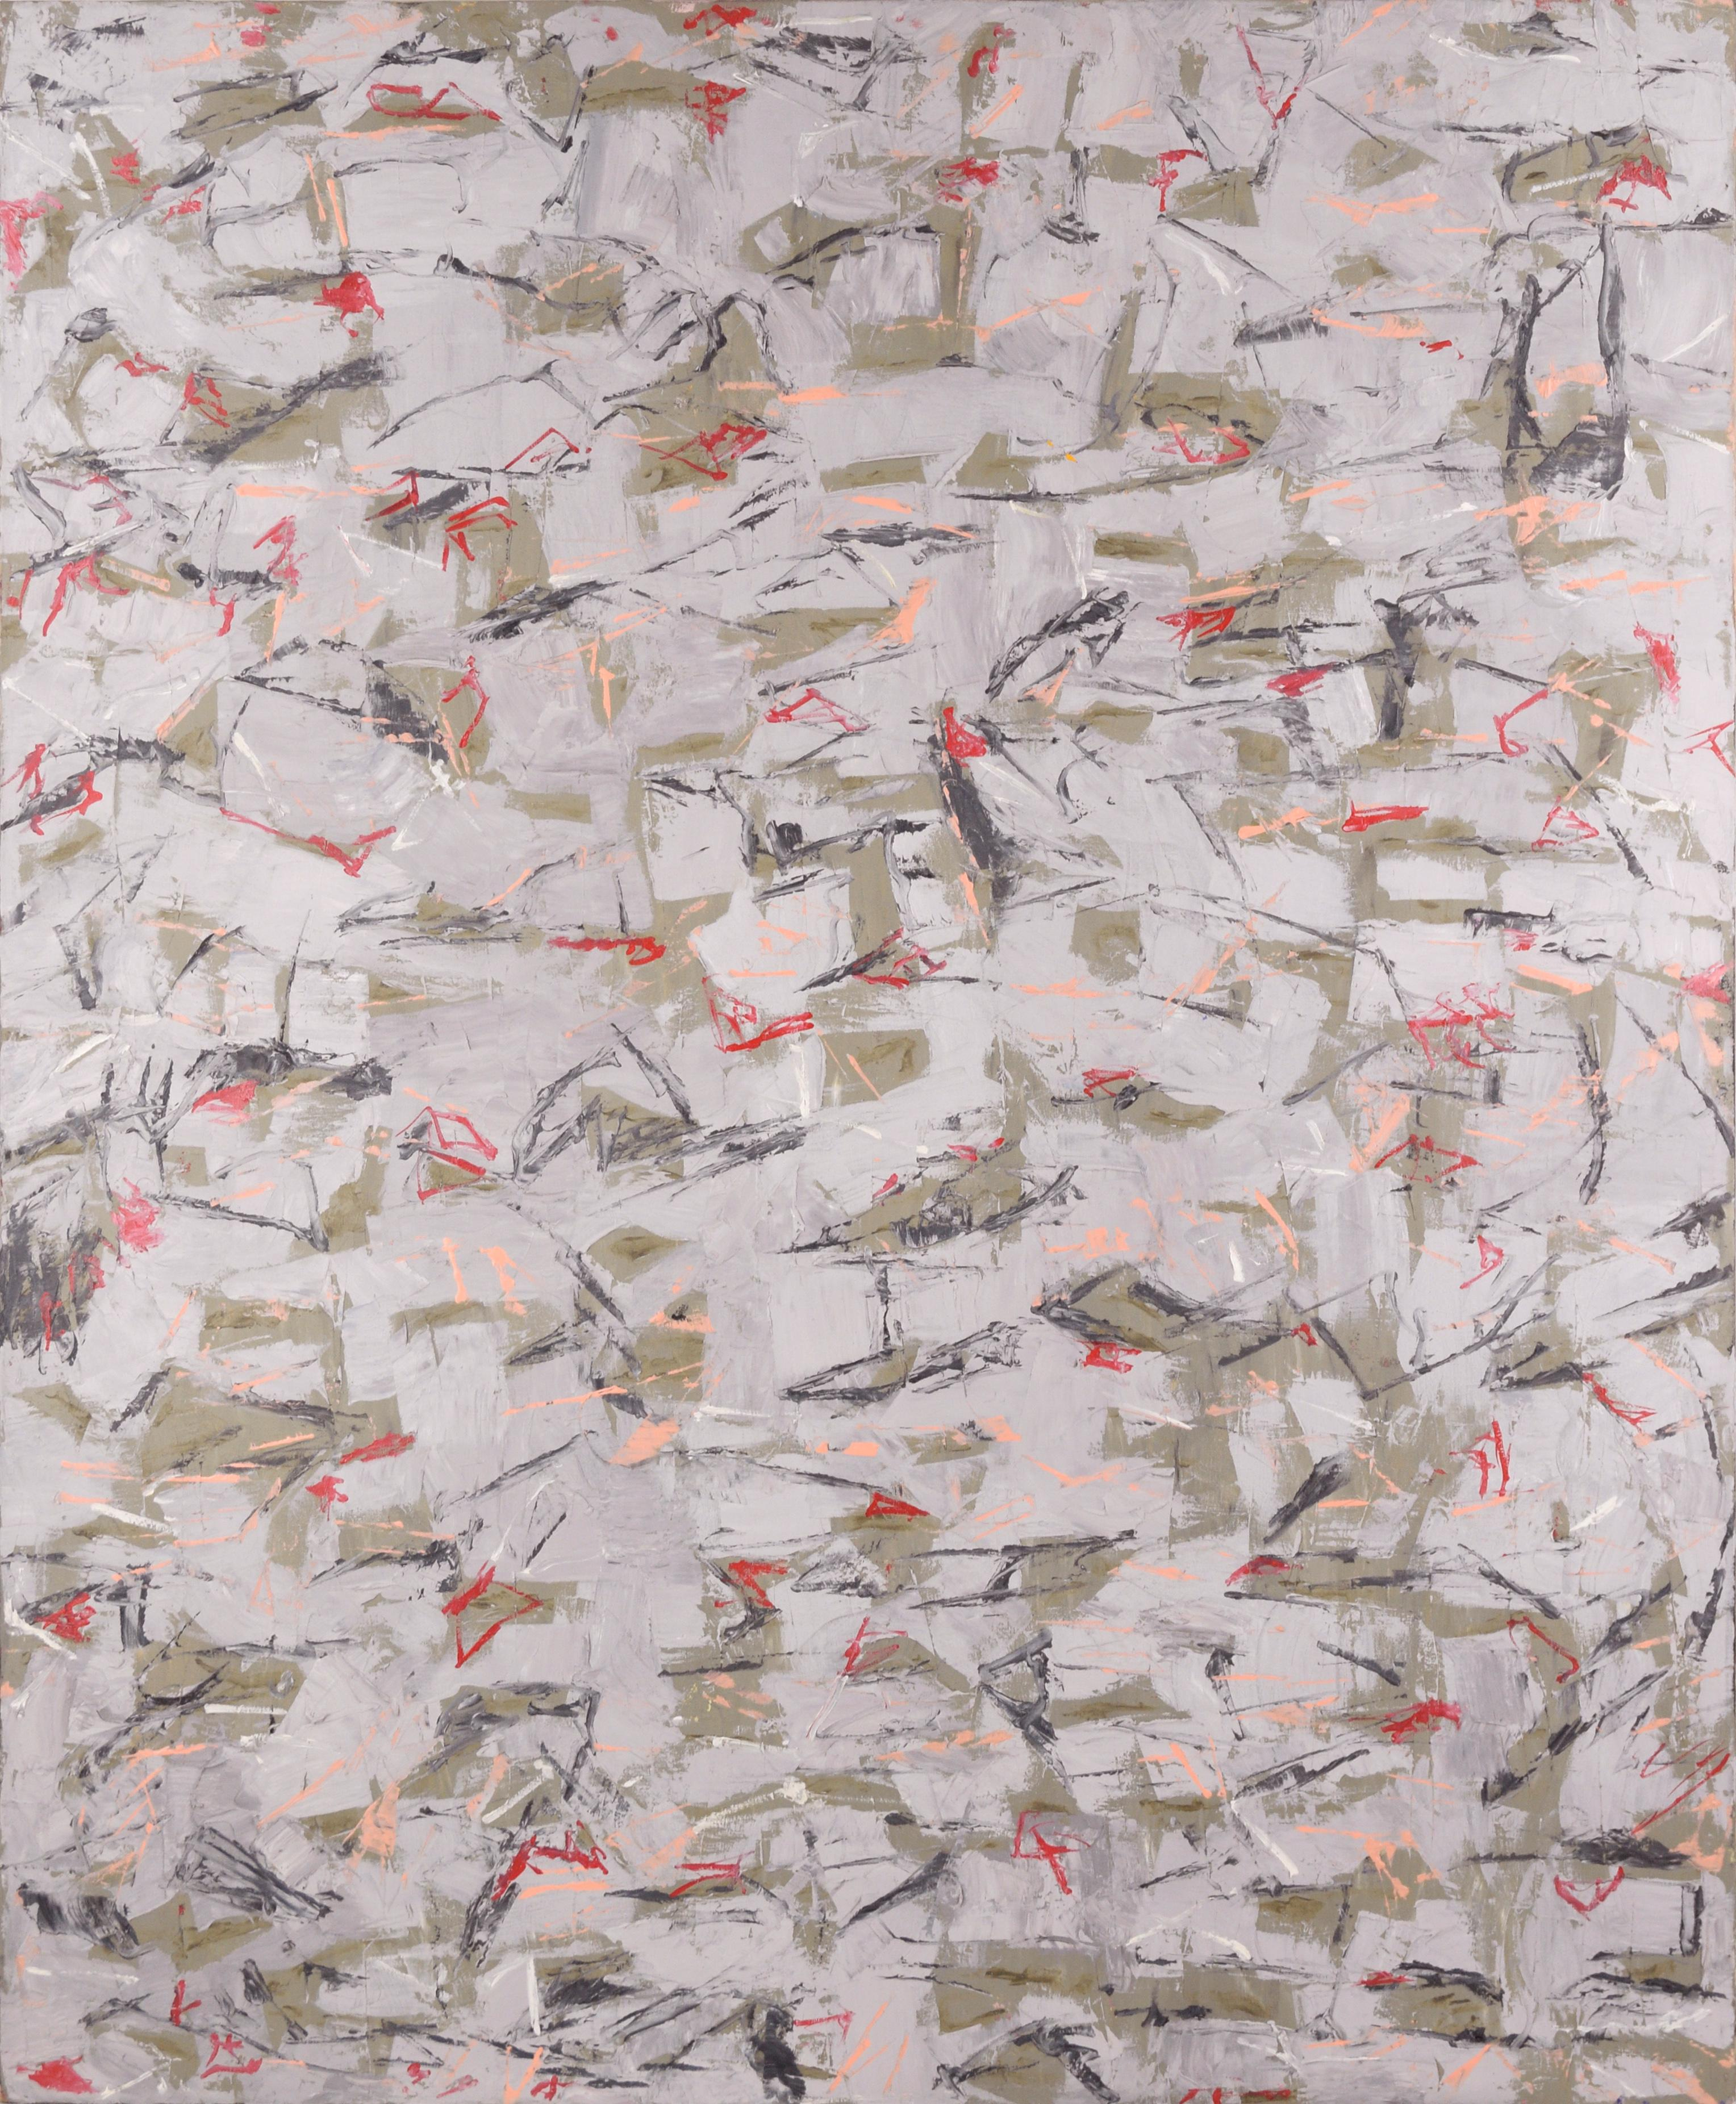 Gray and Green with Red Accents - Abstract Expressionist